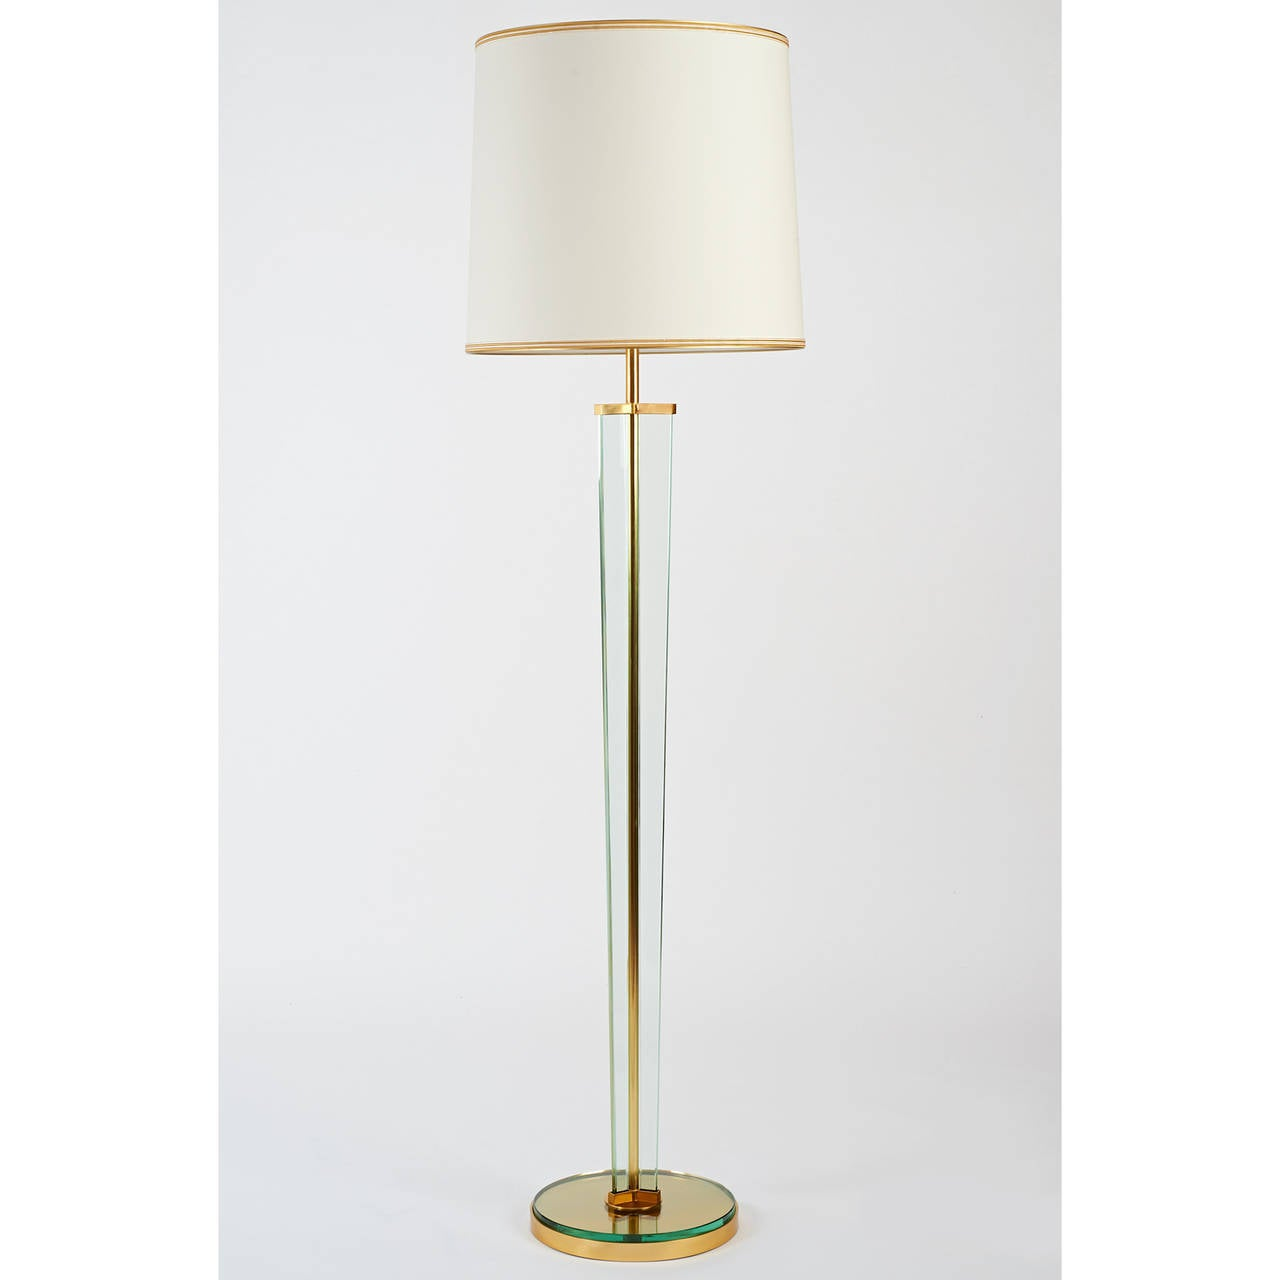 Important fontana arte glass 1950s floor lamp for sale at for 1950s floor lamps